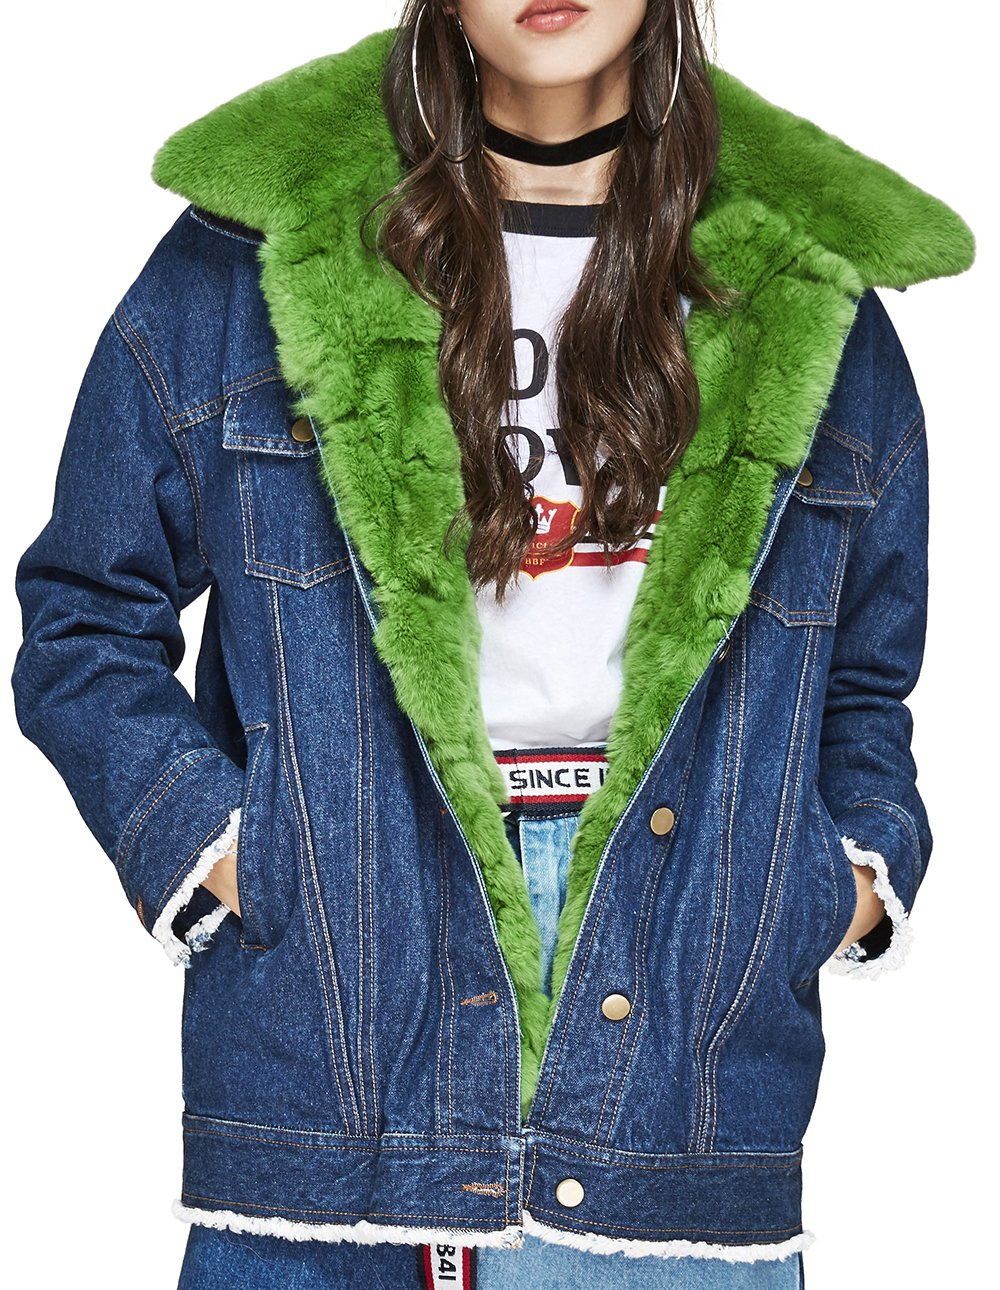 S.ROMZA Women Street Style Jean Jacket Real Rabbit Fur Lining and Fur Collar Outwear Parka (Dark Jean & Green Fur, Large)